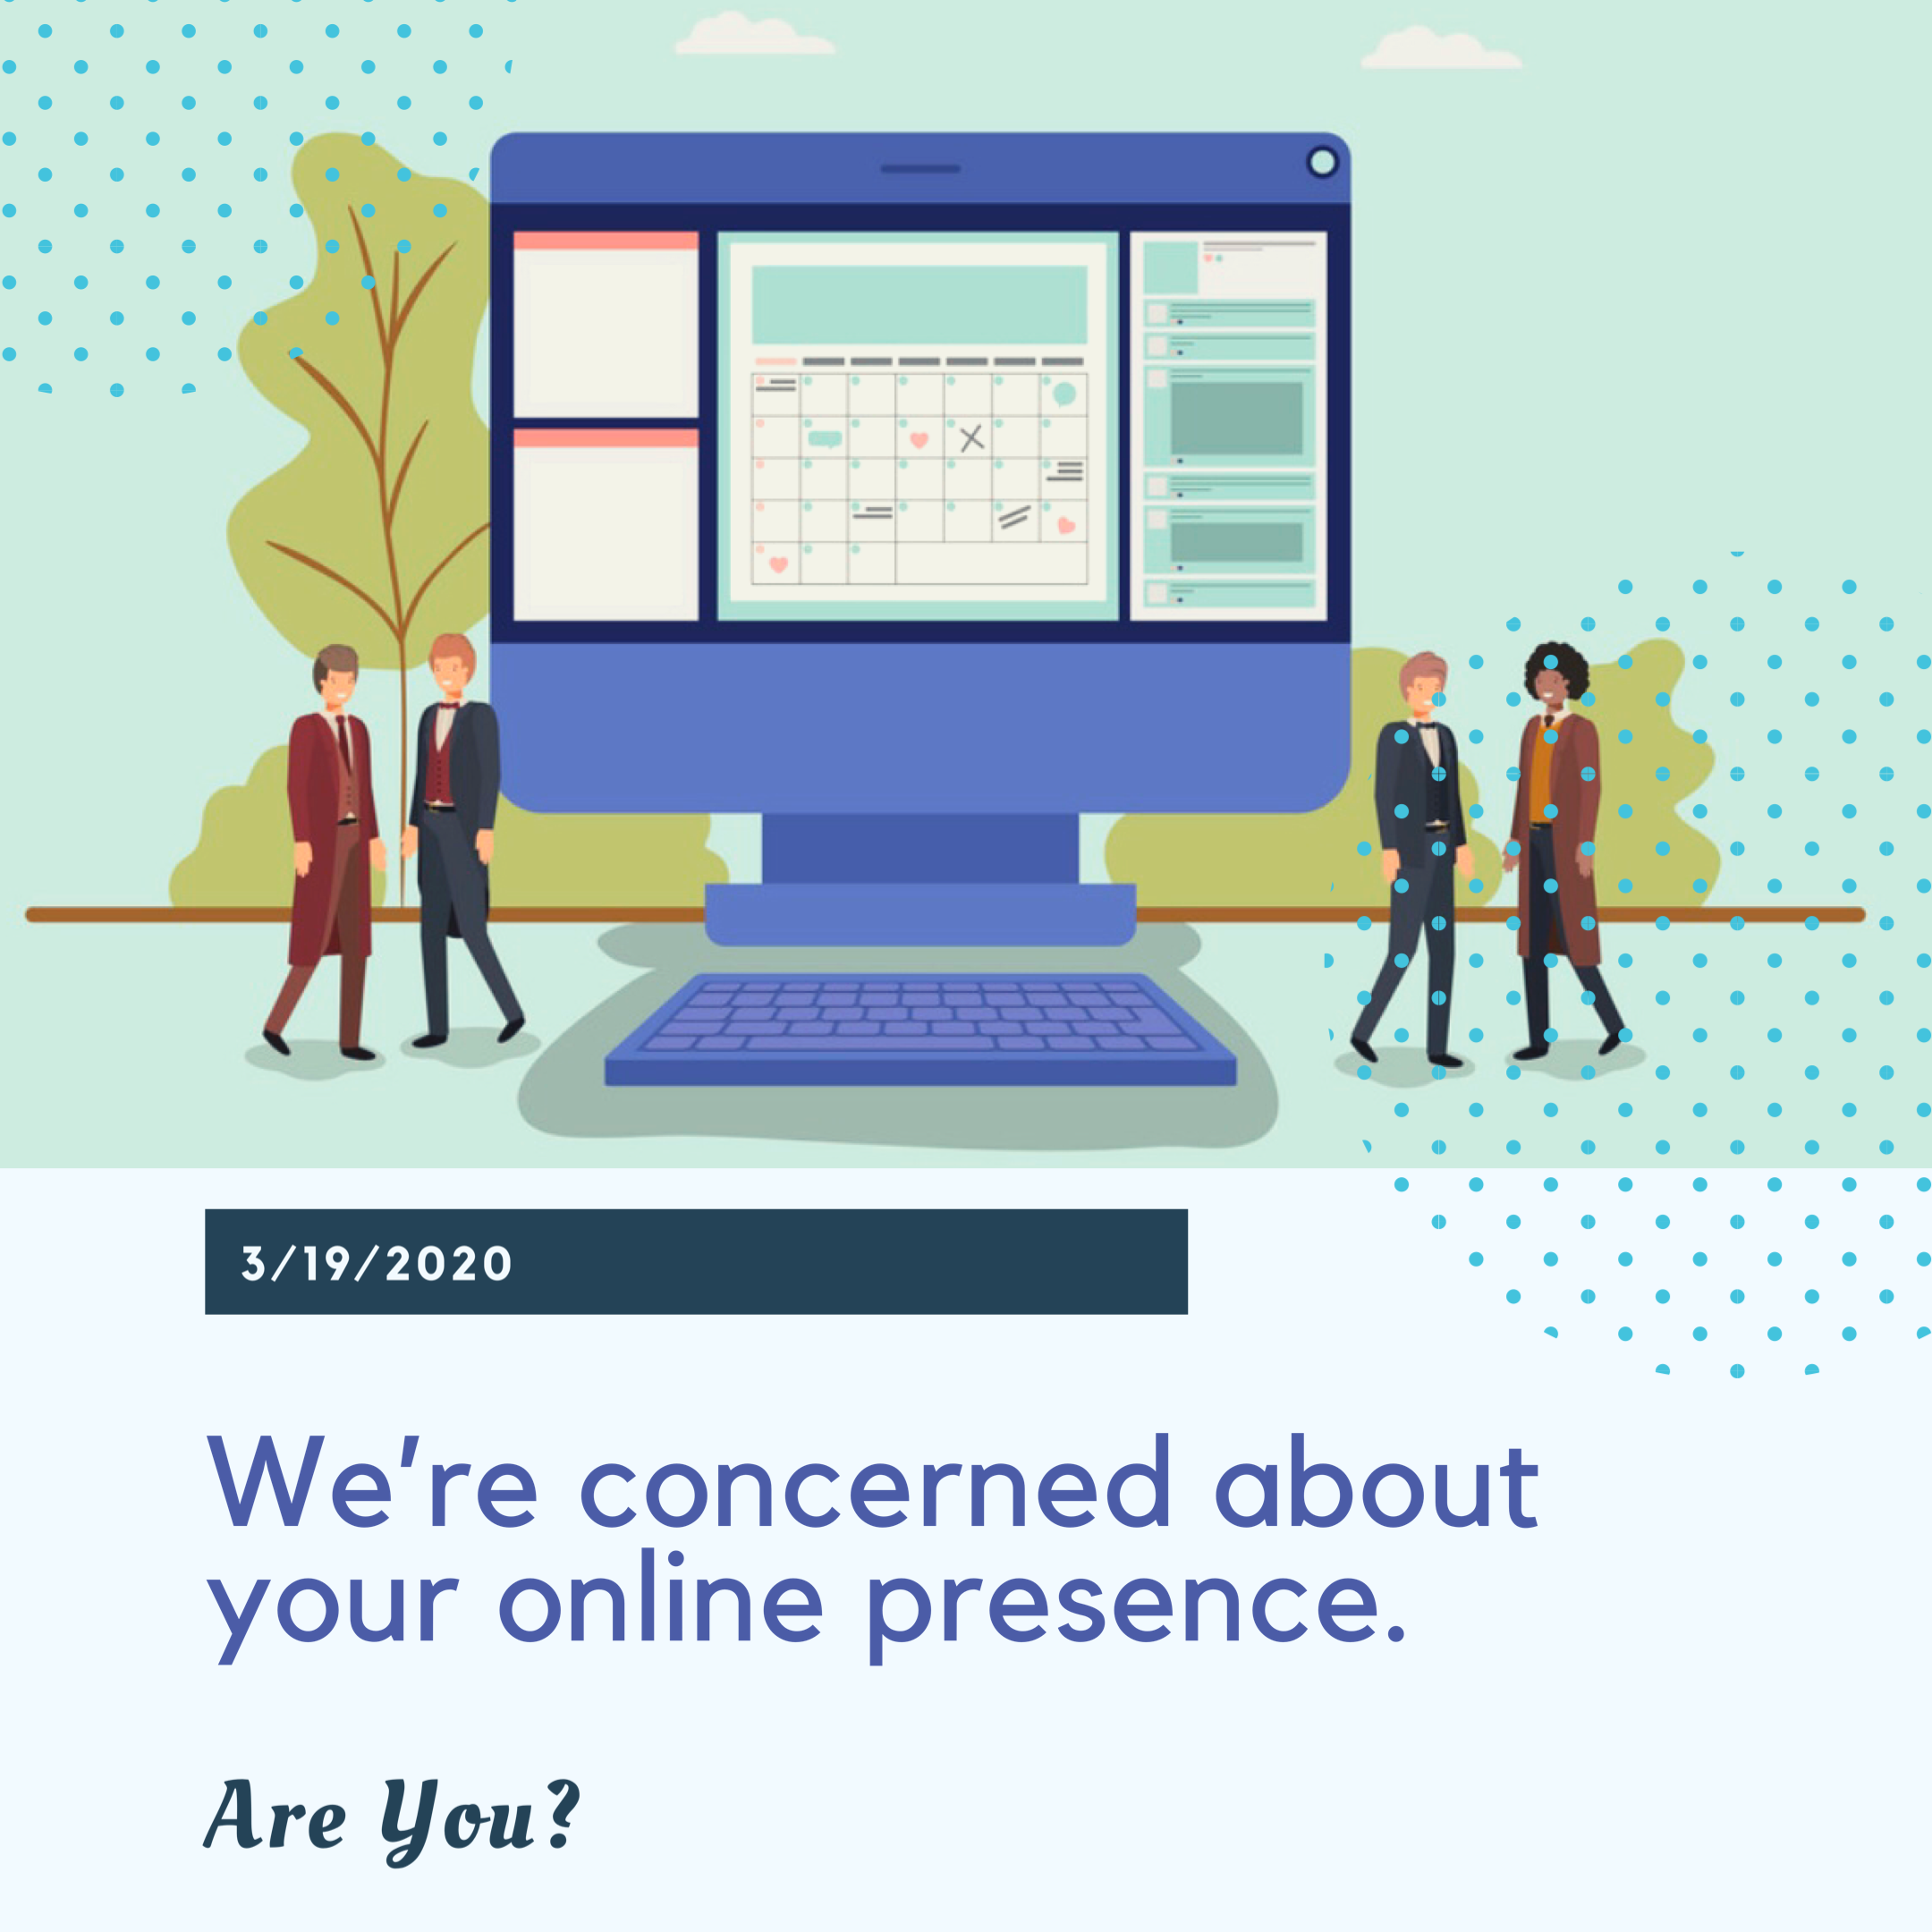 We are concerned about your online presence - are you